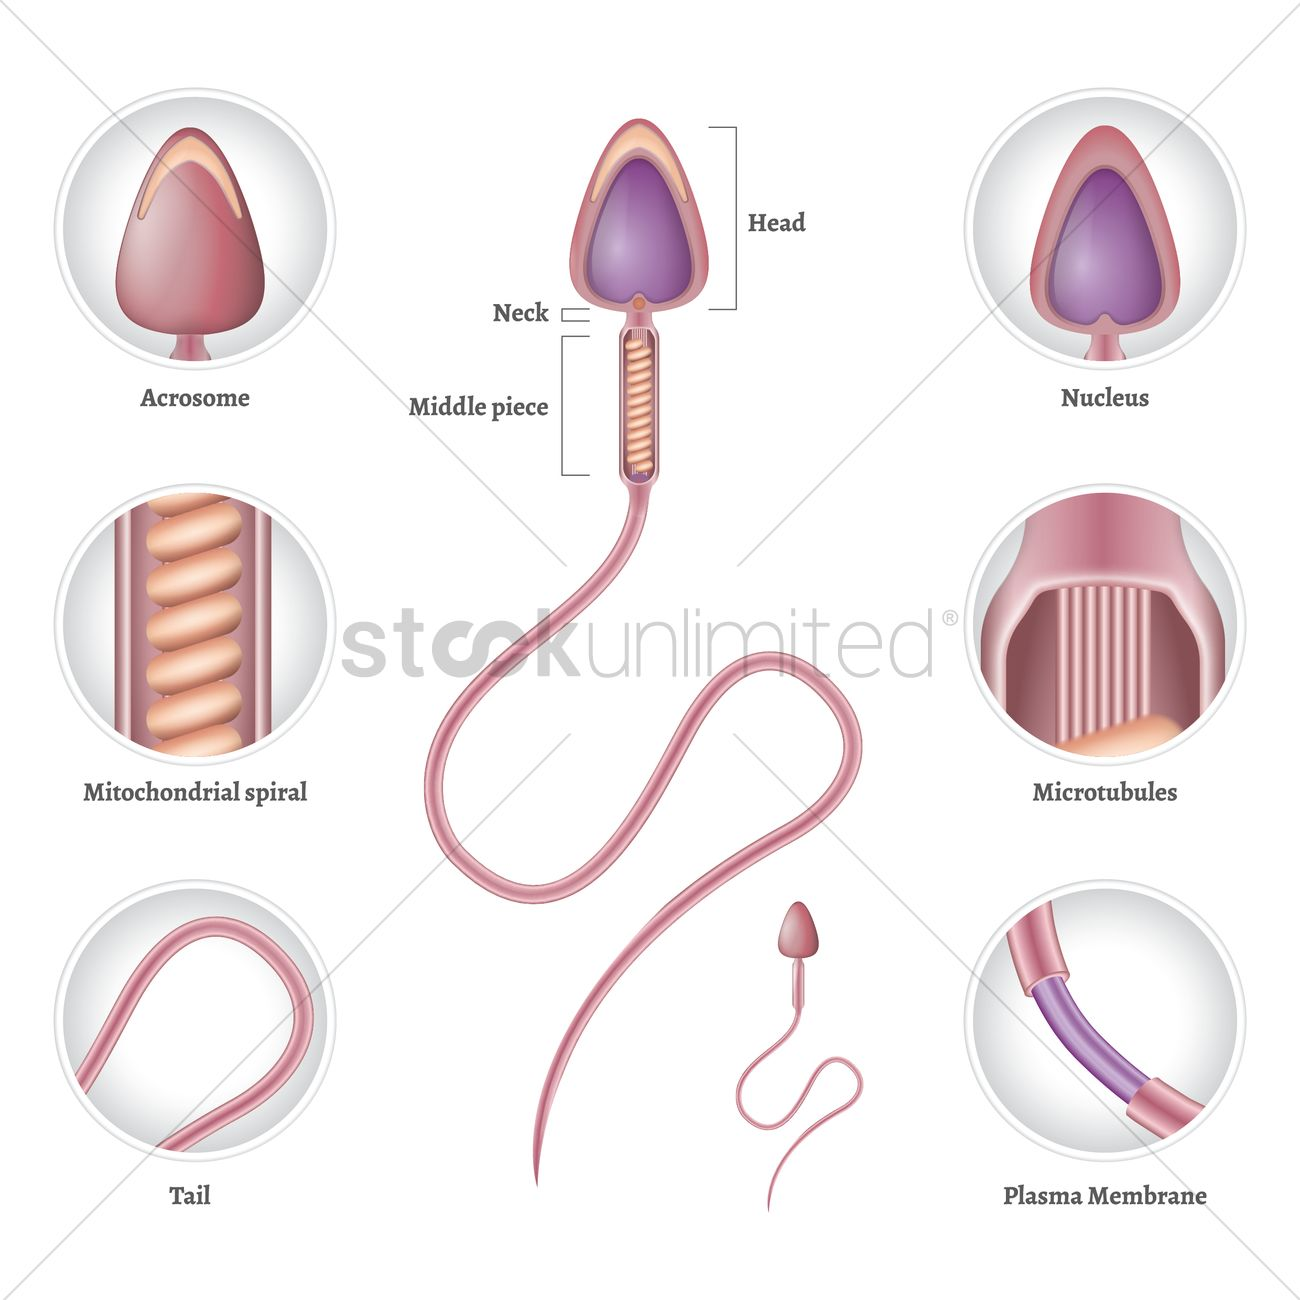 Anatomy Of Sperm Vector Image 1825190 Stockunlimited